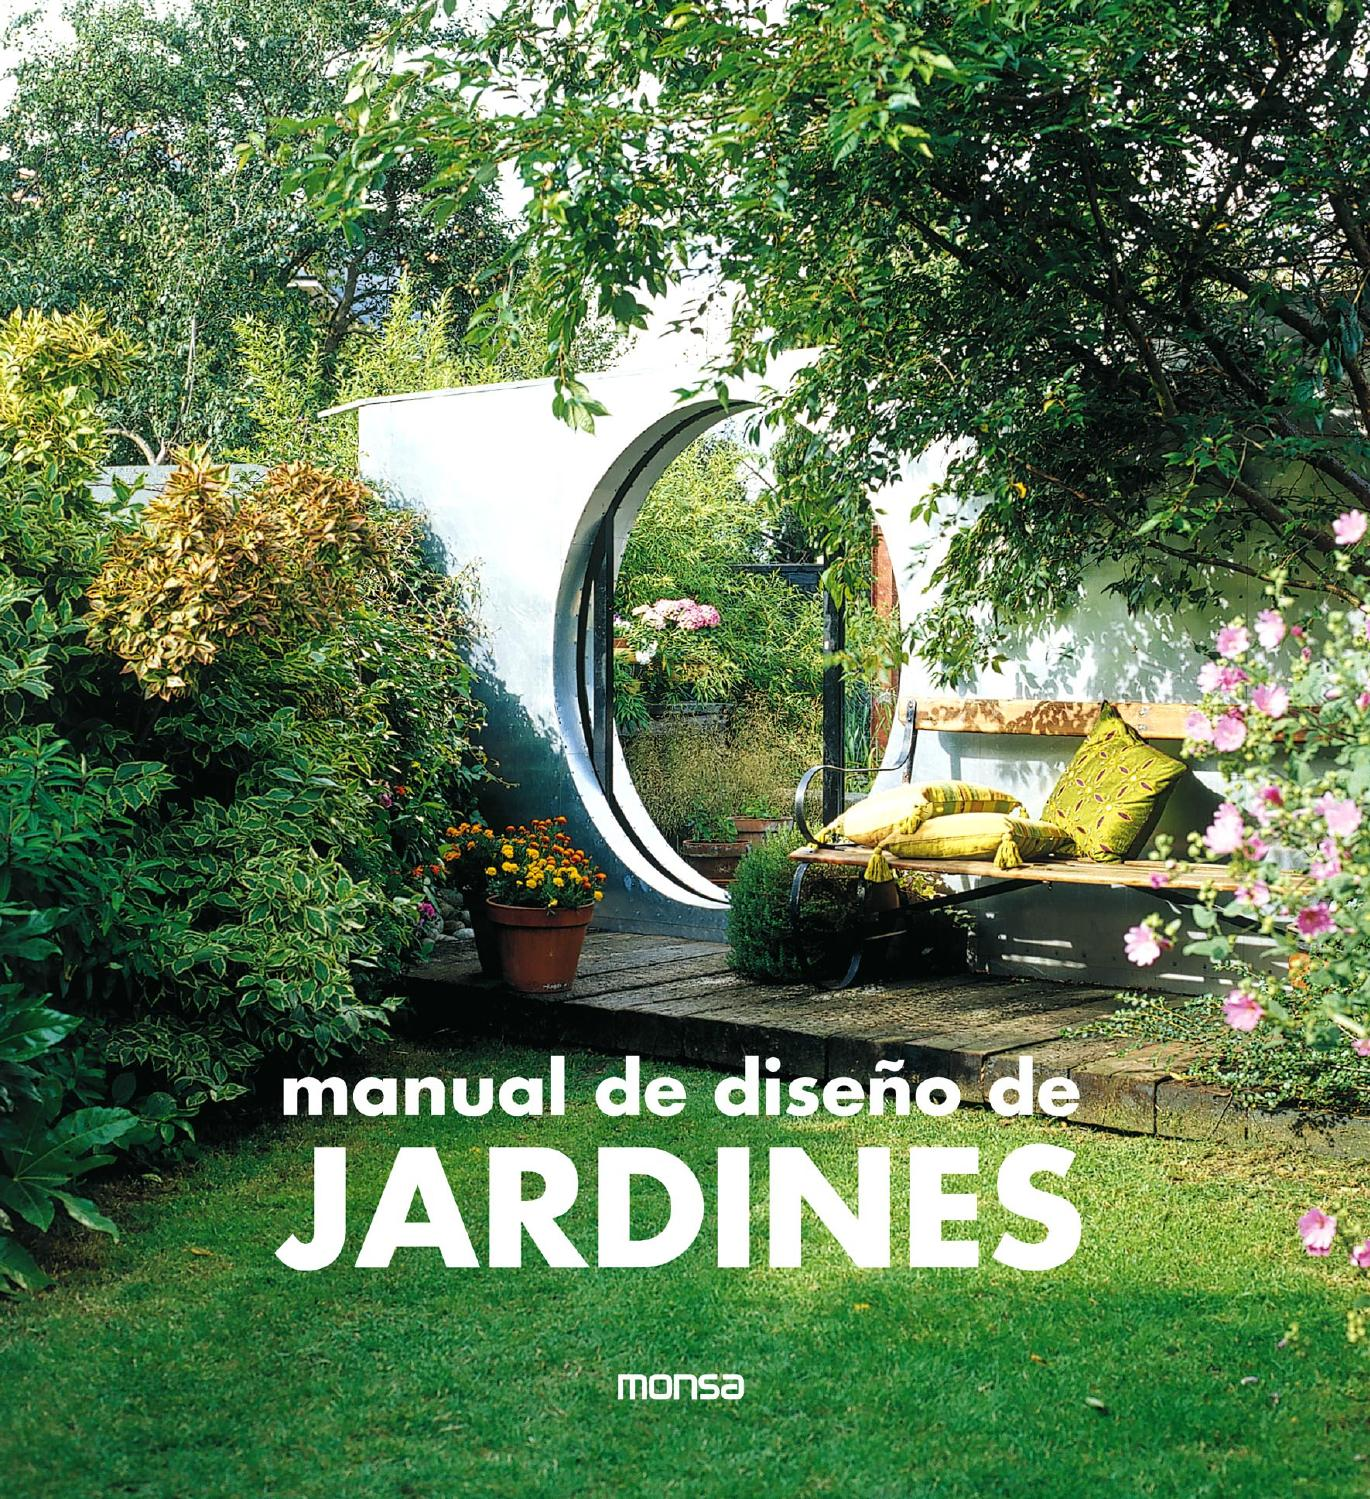 Manual de dise o de jardines by monsa publications issuu - Escaleras para jardin ...